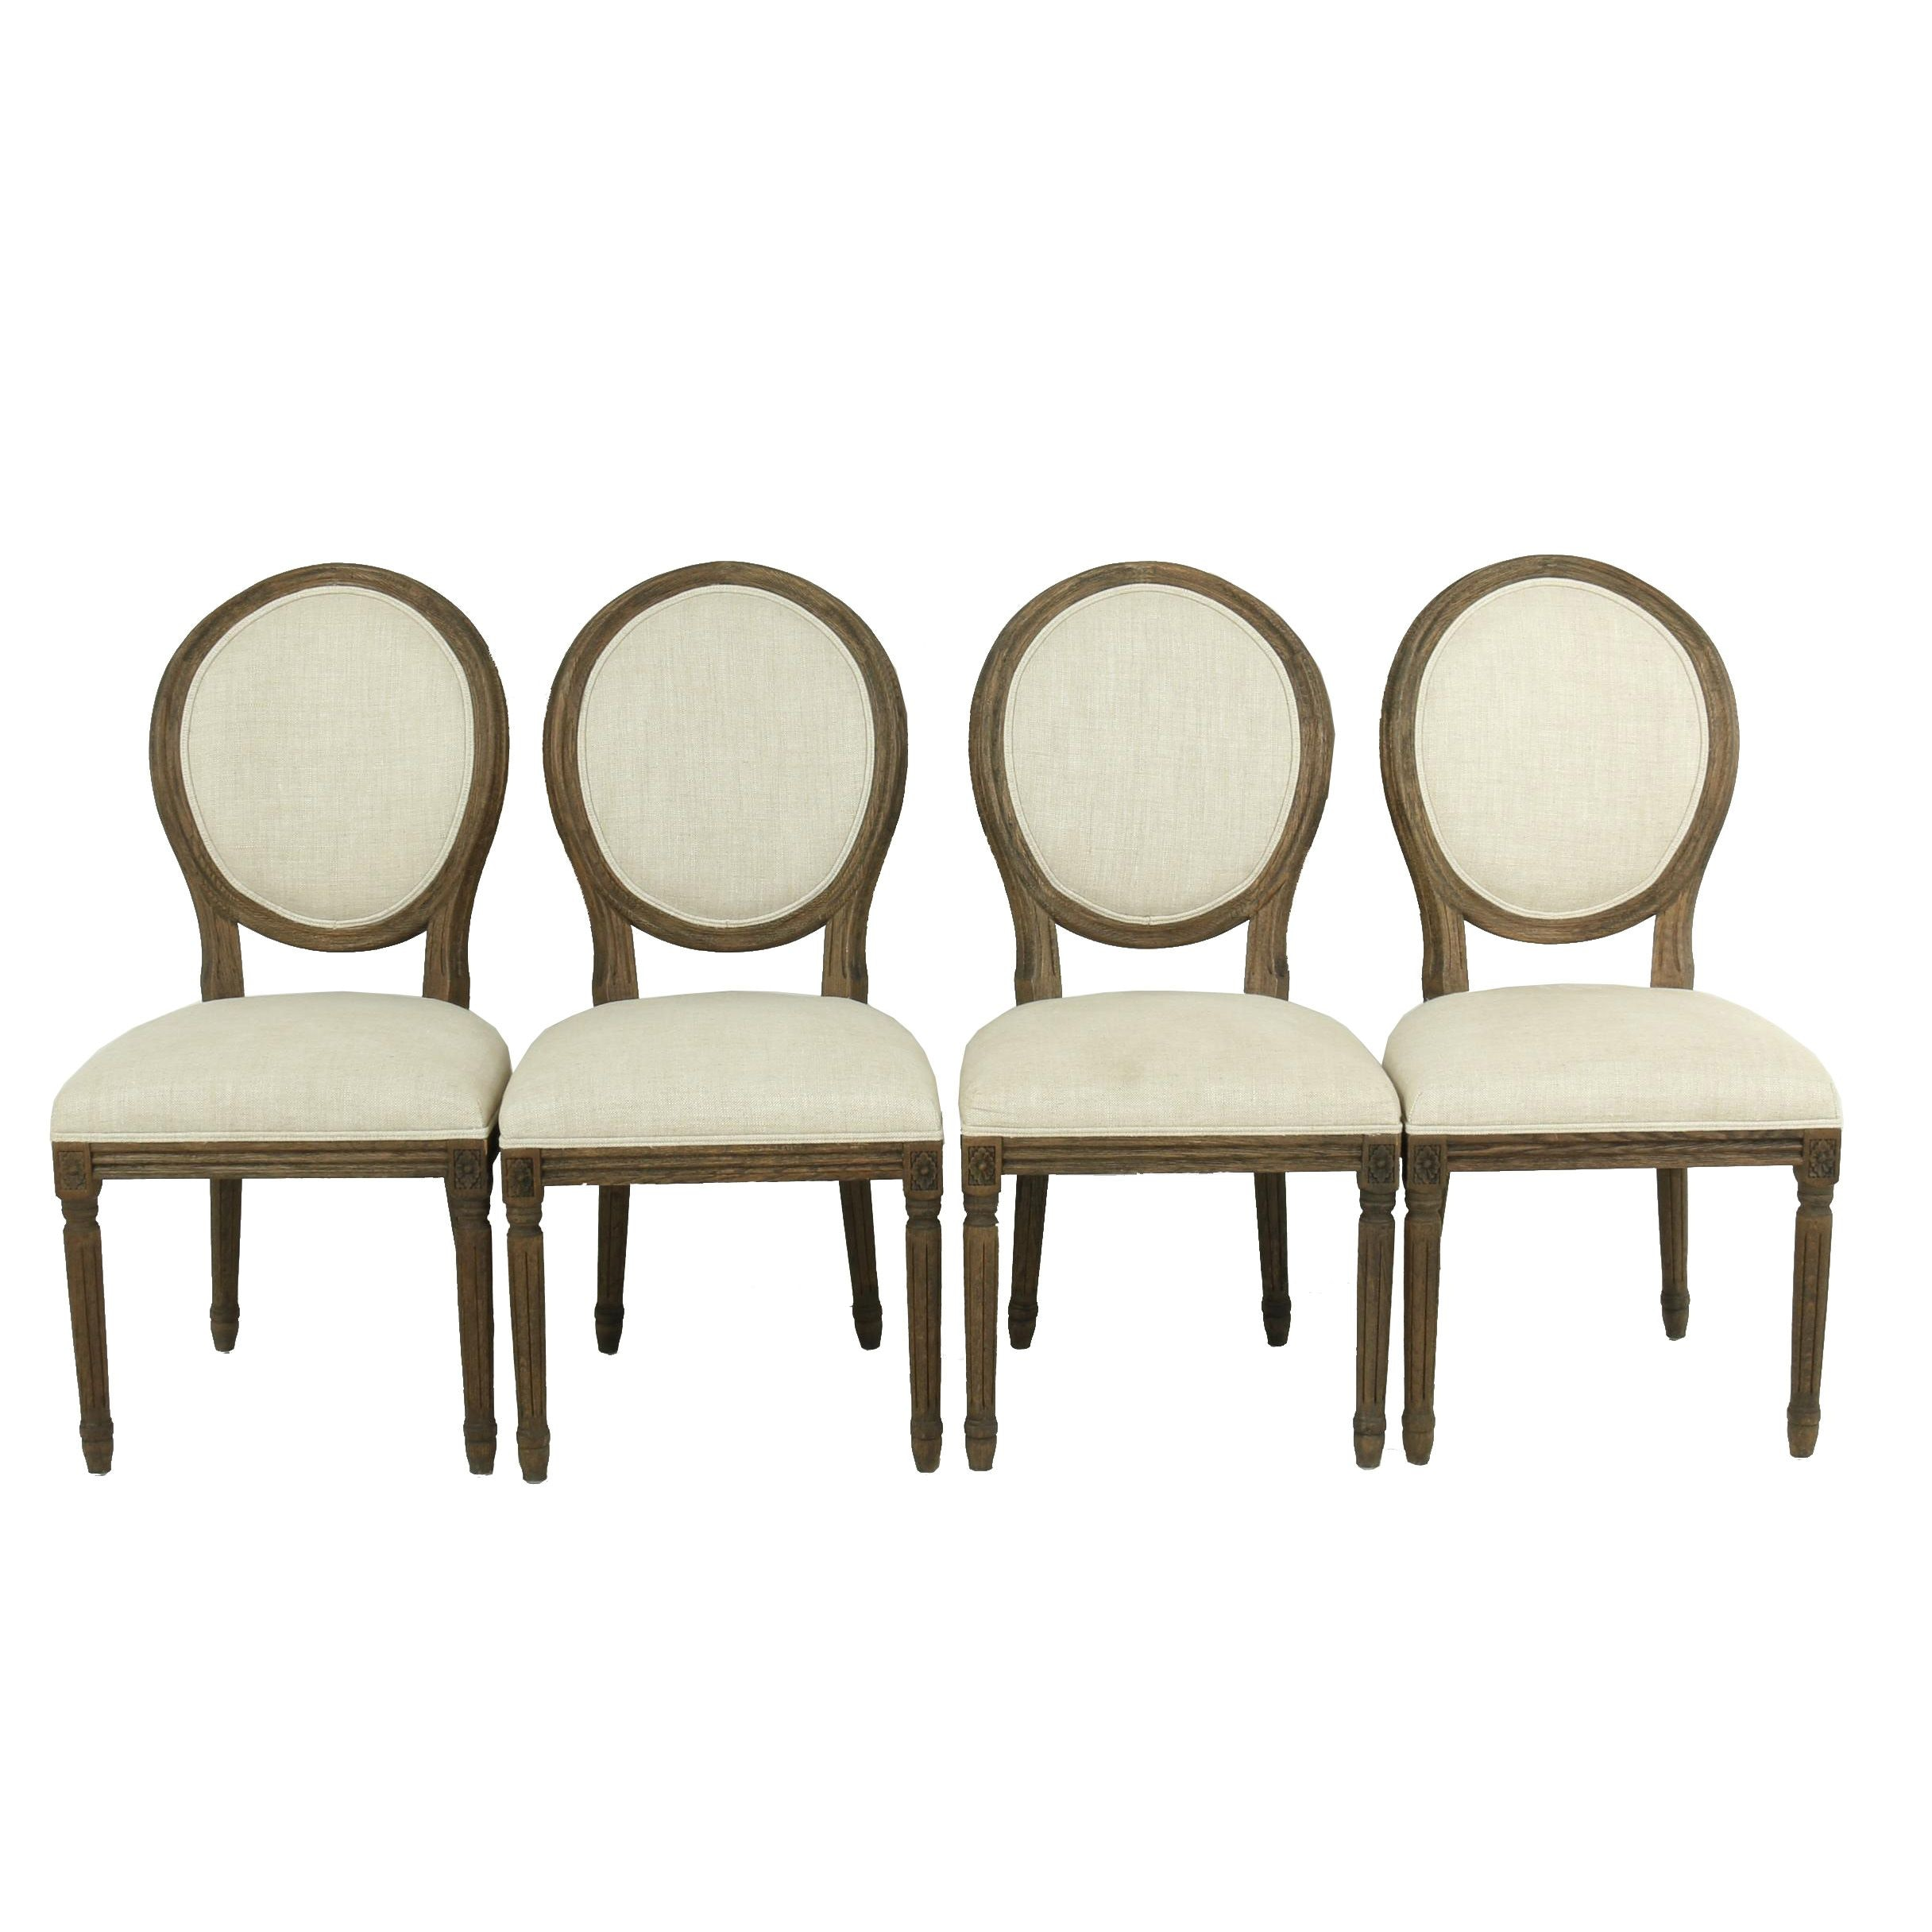 """Vintage French Round"" Balloon Back Oak Chairs by Restoration Hardware, 21st C"